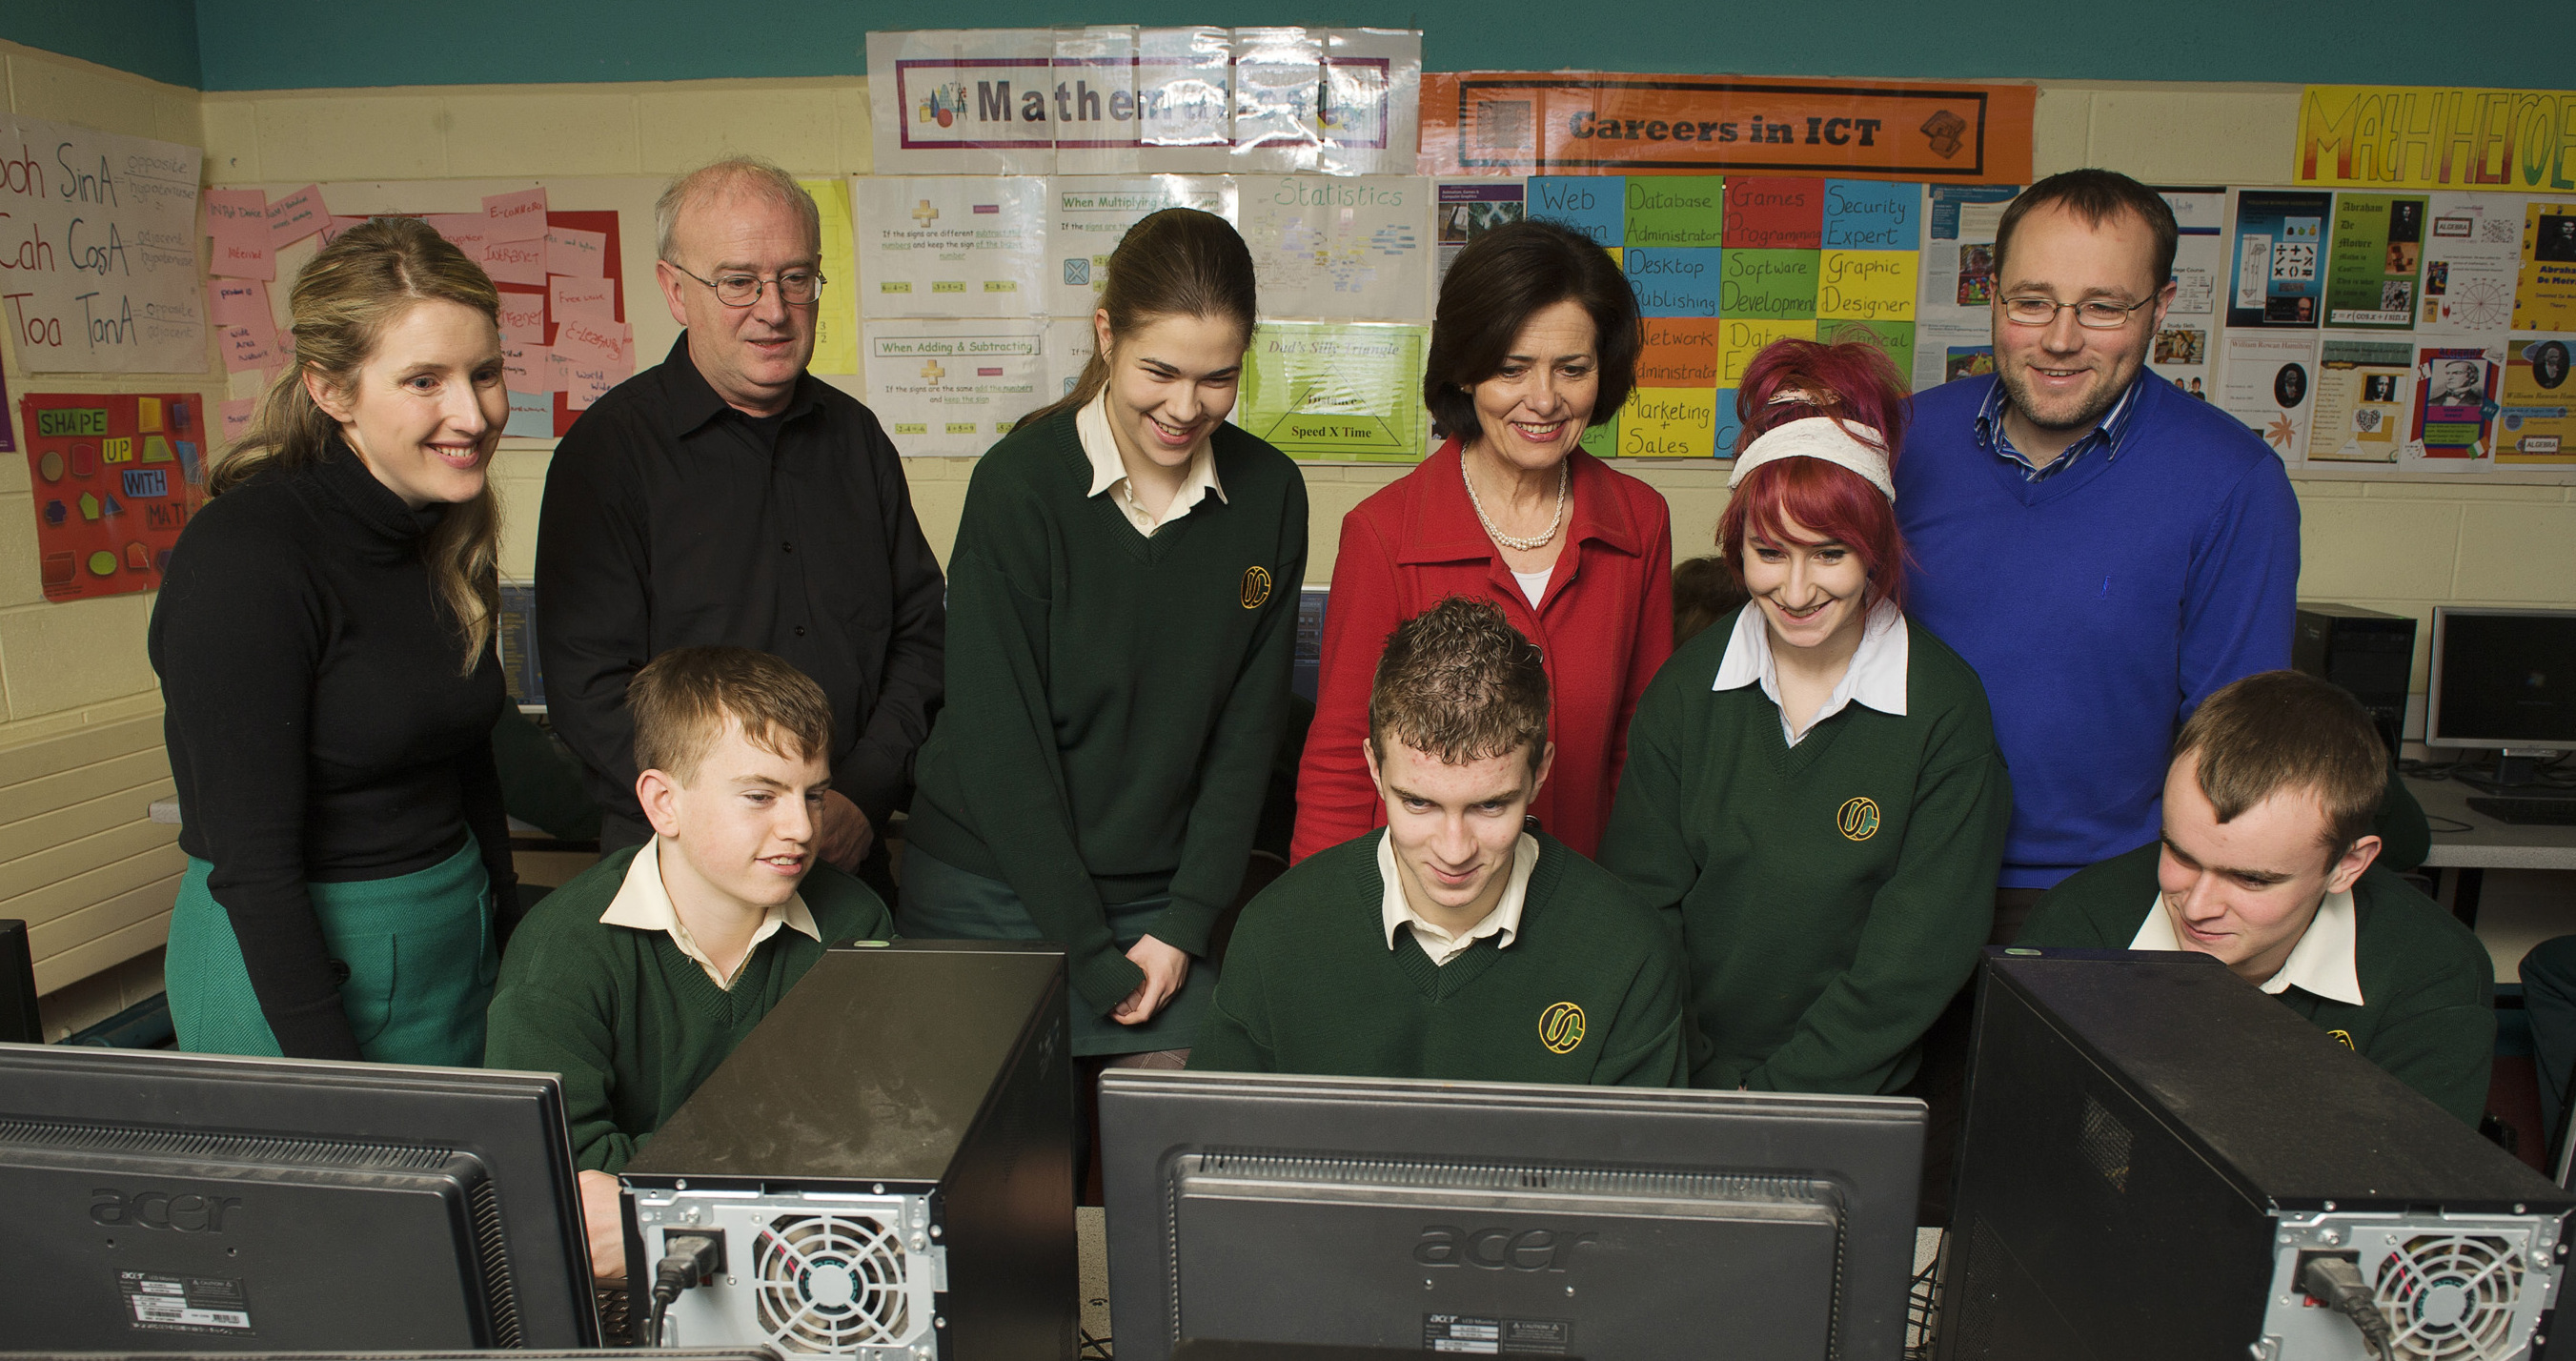 Pictured at the Davitt College launch of the new Computer Programming Module: (front Row) Transition Year students Michael Flatley, Sean Murphy and Ross Chambers. (Back Row) Ms. Emma Nestor, ICT and Programming Teacher; Mr. Brendan Smith, NUI Galway; TY student Aoife Doyle; Ms. Bernie Rowland, Principal, Davitt College; TY student Melissa Duffy and Mr. Niall O'Connor , teacher of Maths and ICT Co-Ordinator.